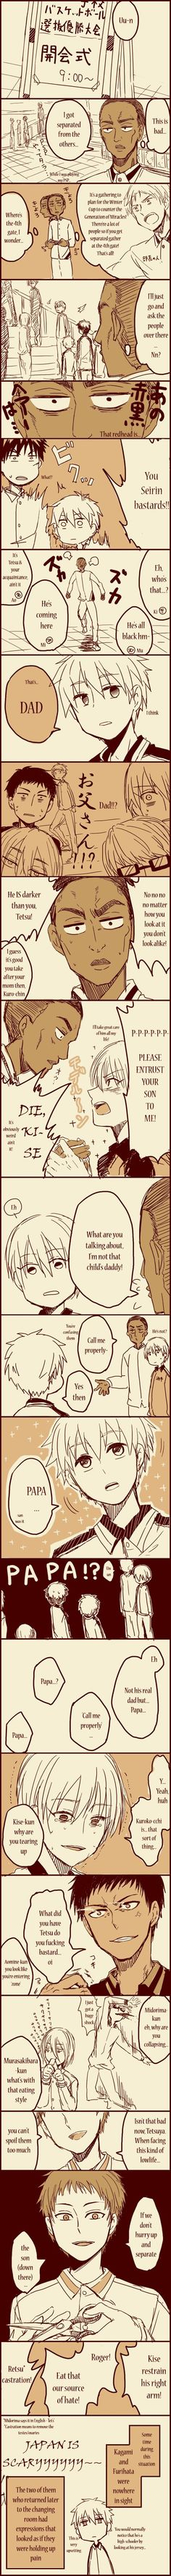 The black guy's real name is Papa Mbaye Siki. 'Dad' was just a nickname Kuroko created for him (because his name is too long). When Kuroko called him 'Papa' (refering to his full name), Kiseki no Sedai (dumbasses that they are) assumed that Papa and Kuroko were involved in, like, son-dad fetish play or something. Hence the reactions...